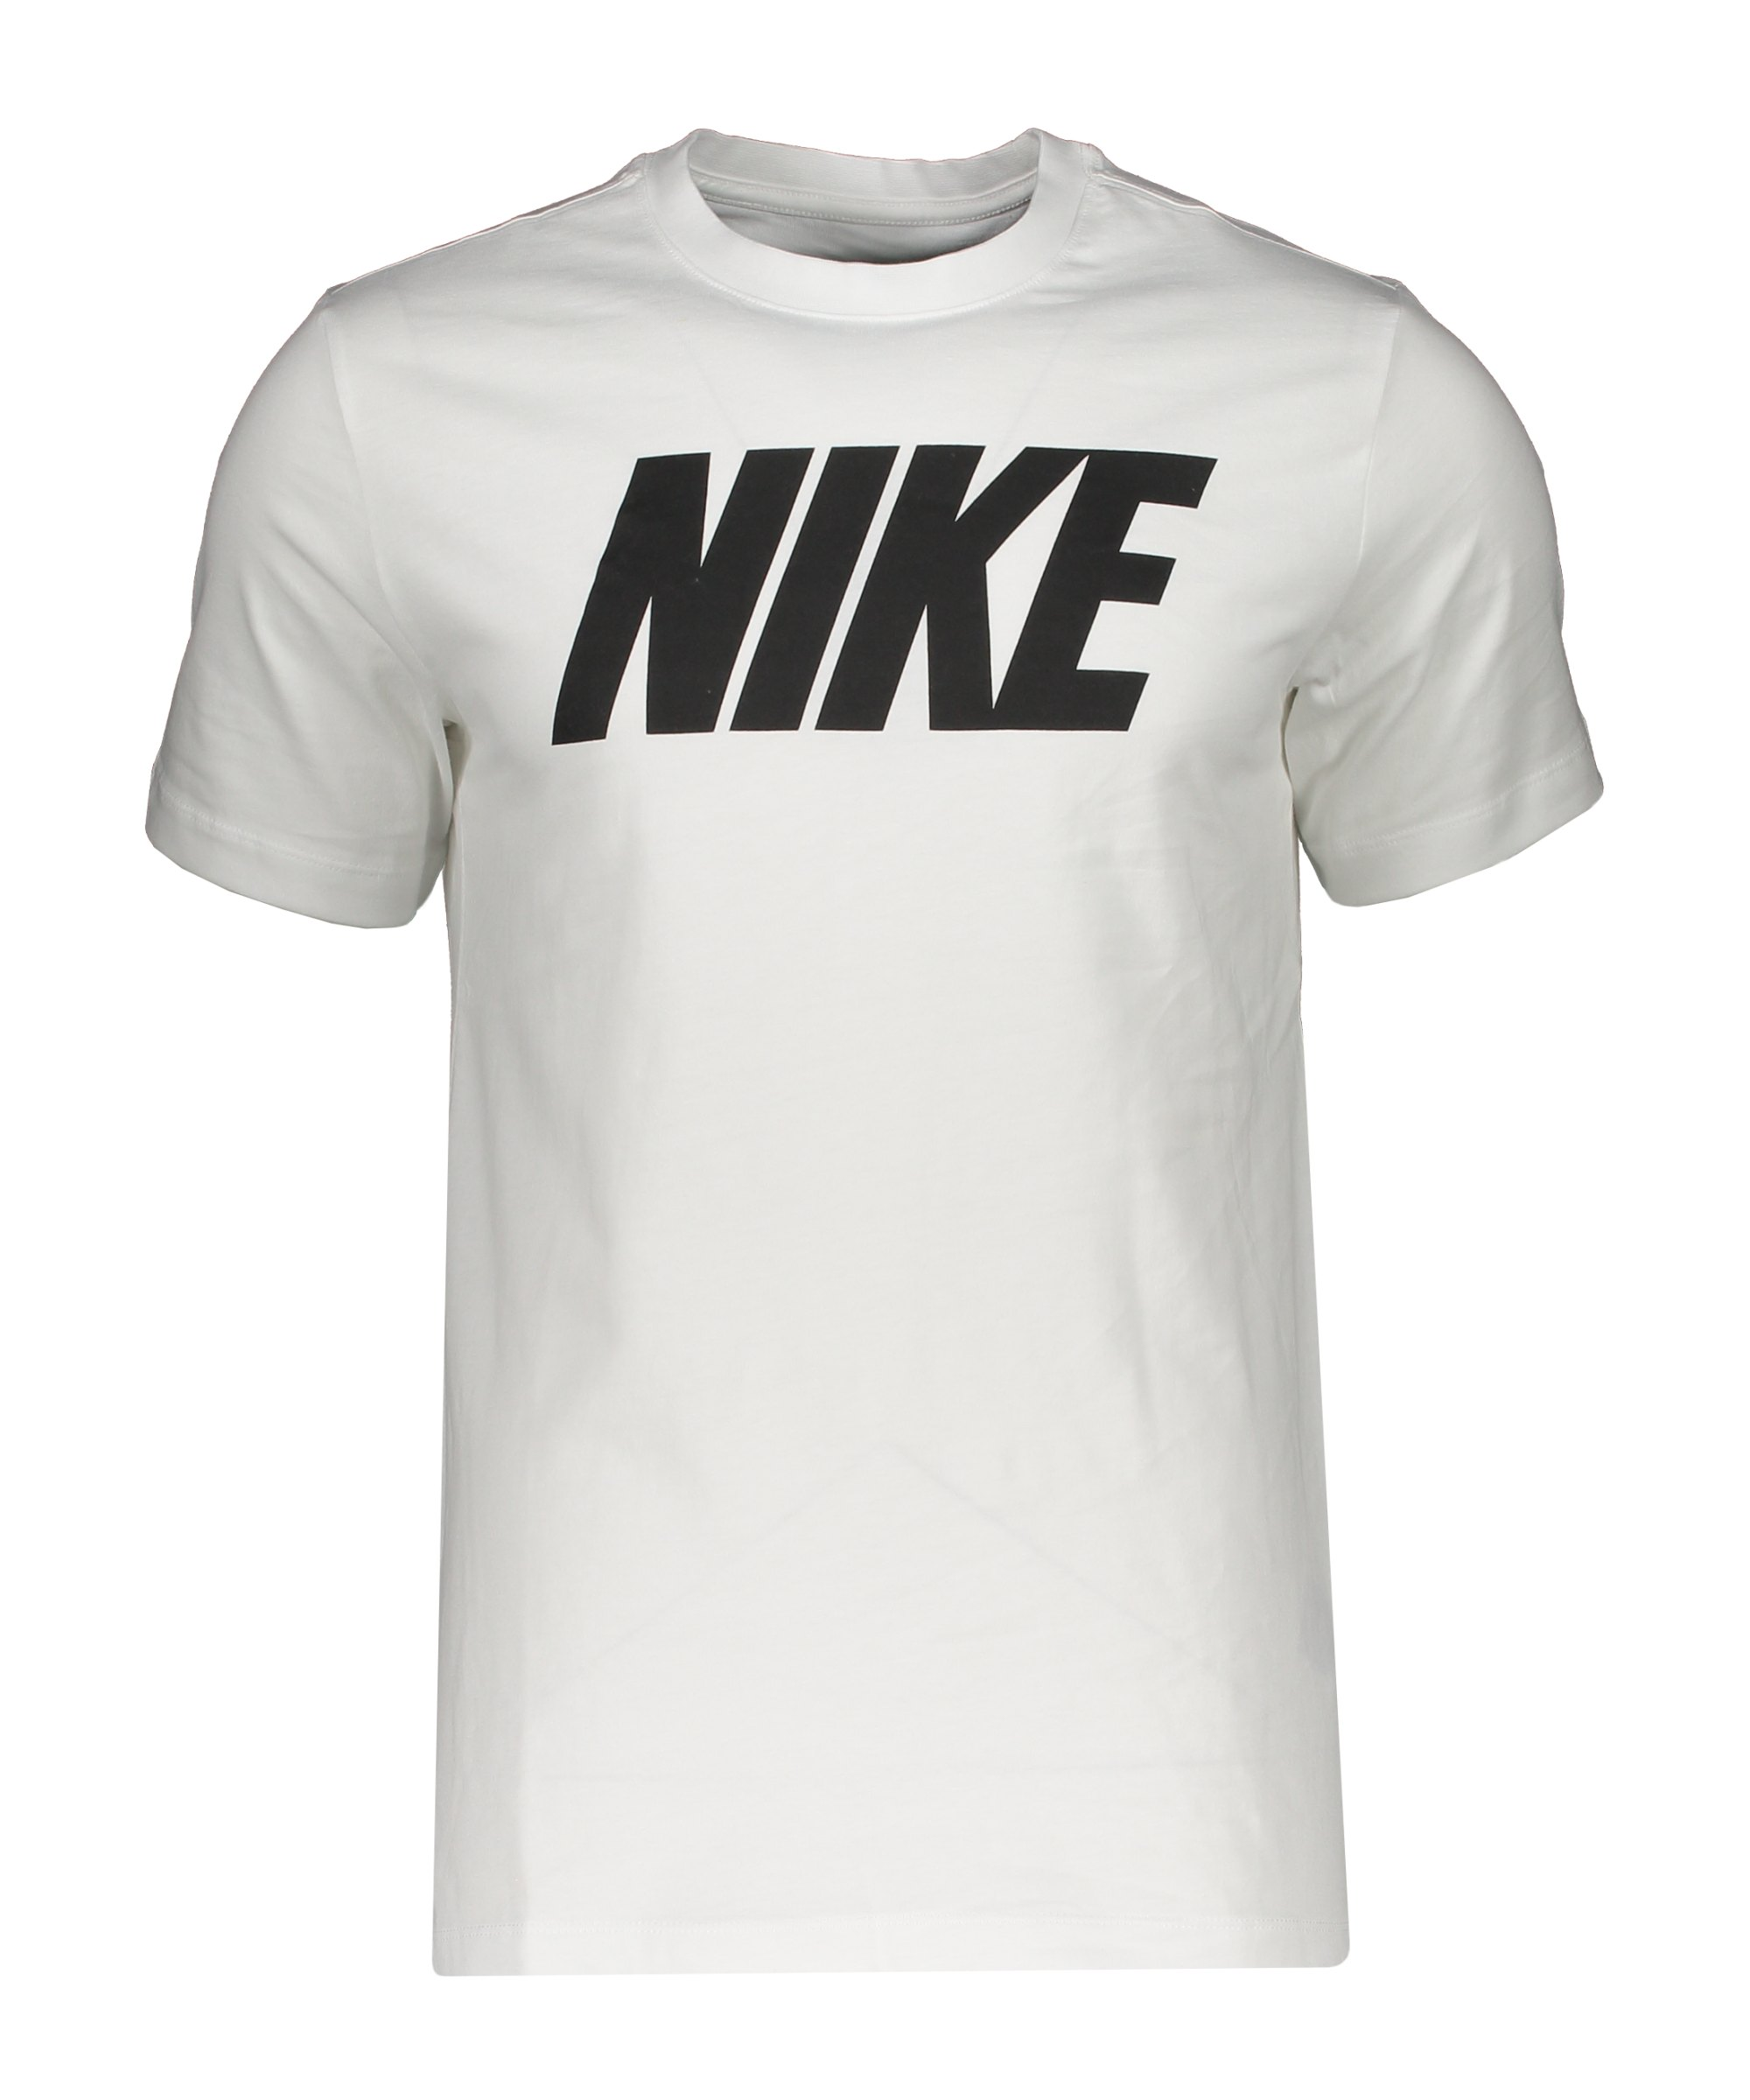 Nike Icon Block T-Shirt Weiss F100 - weiss